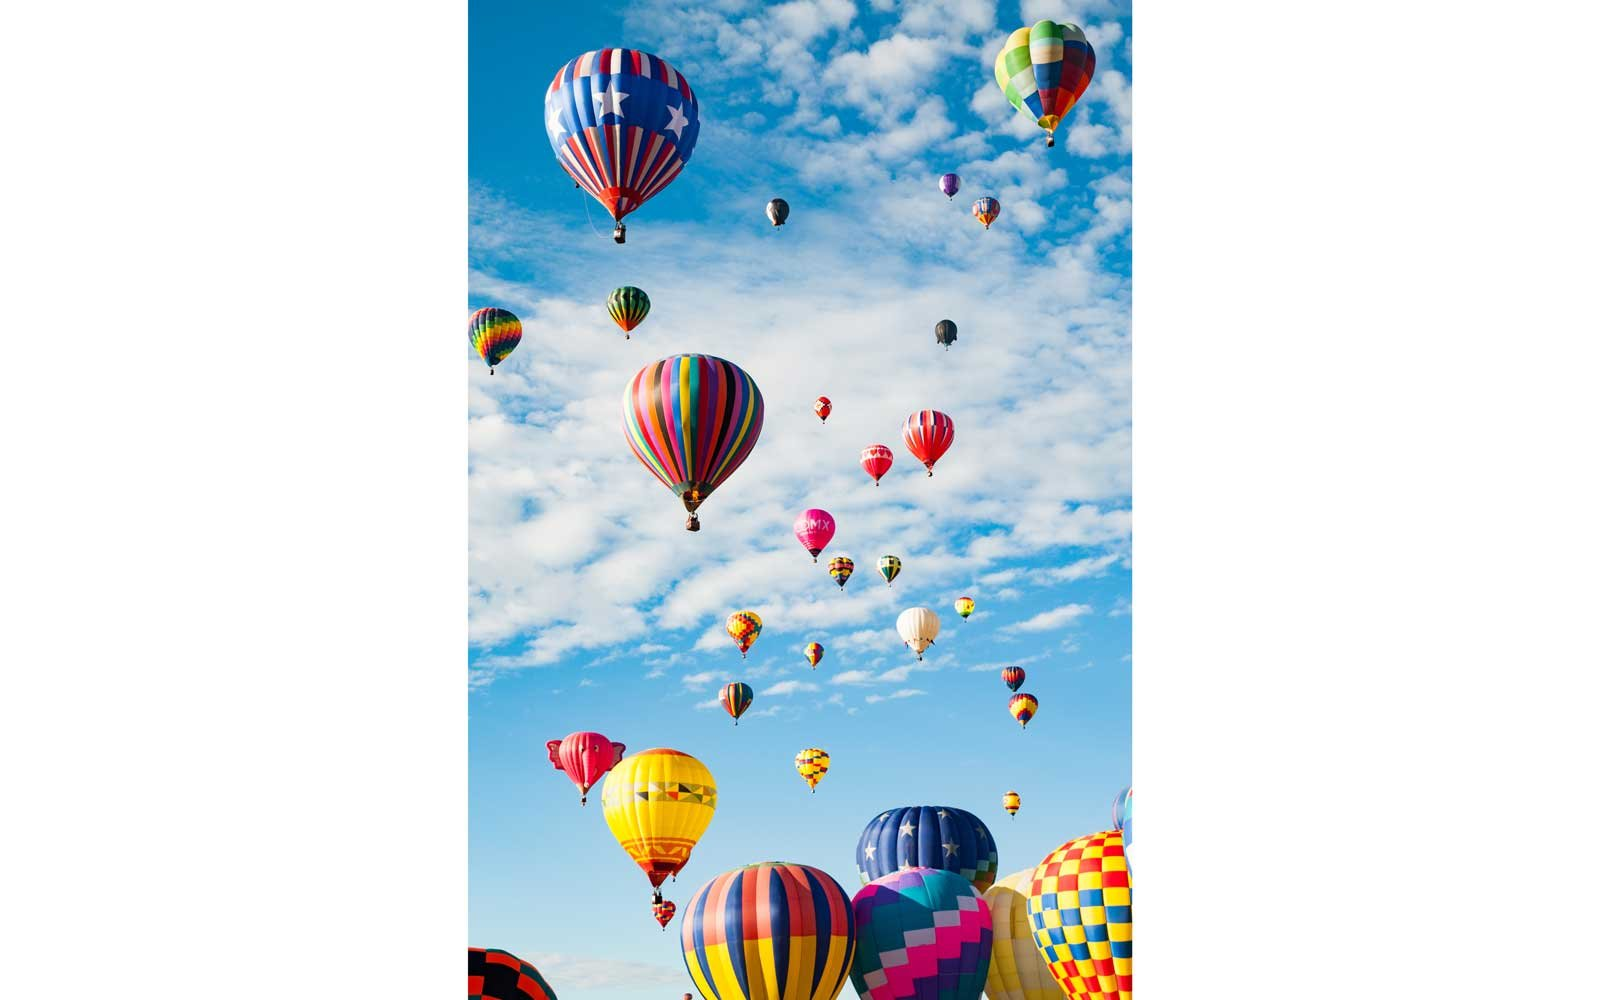 Albuquerque, New Mexico Hot Air Balloons